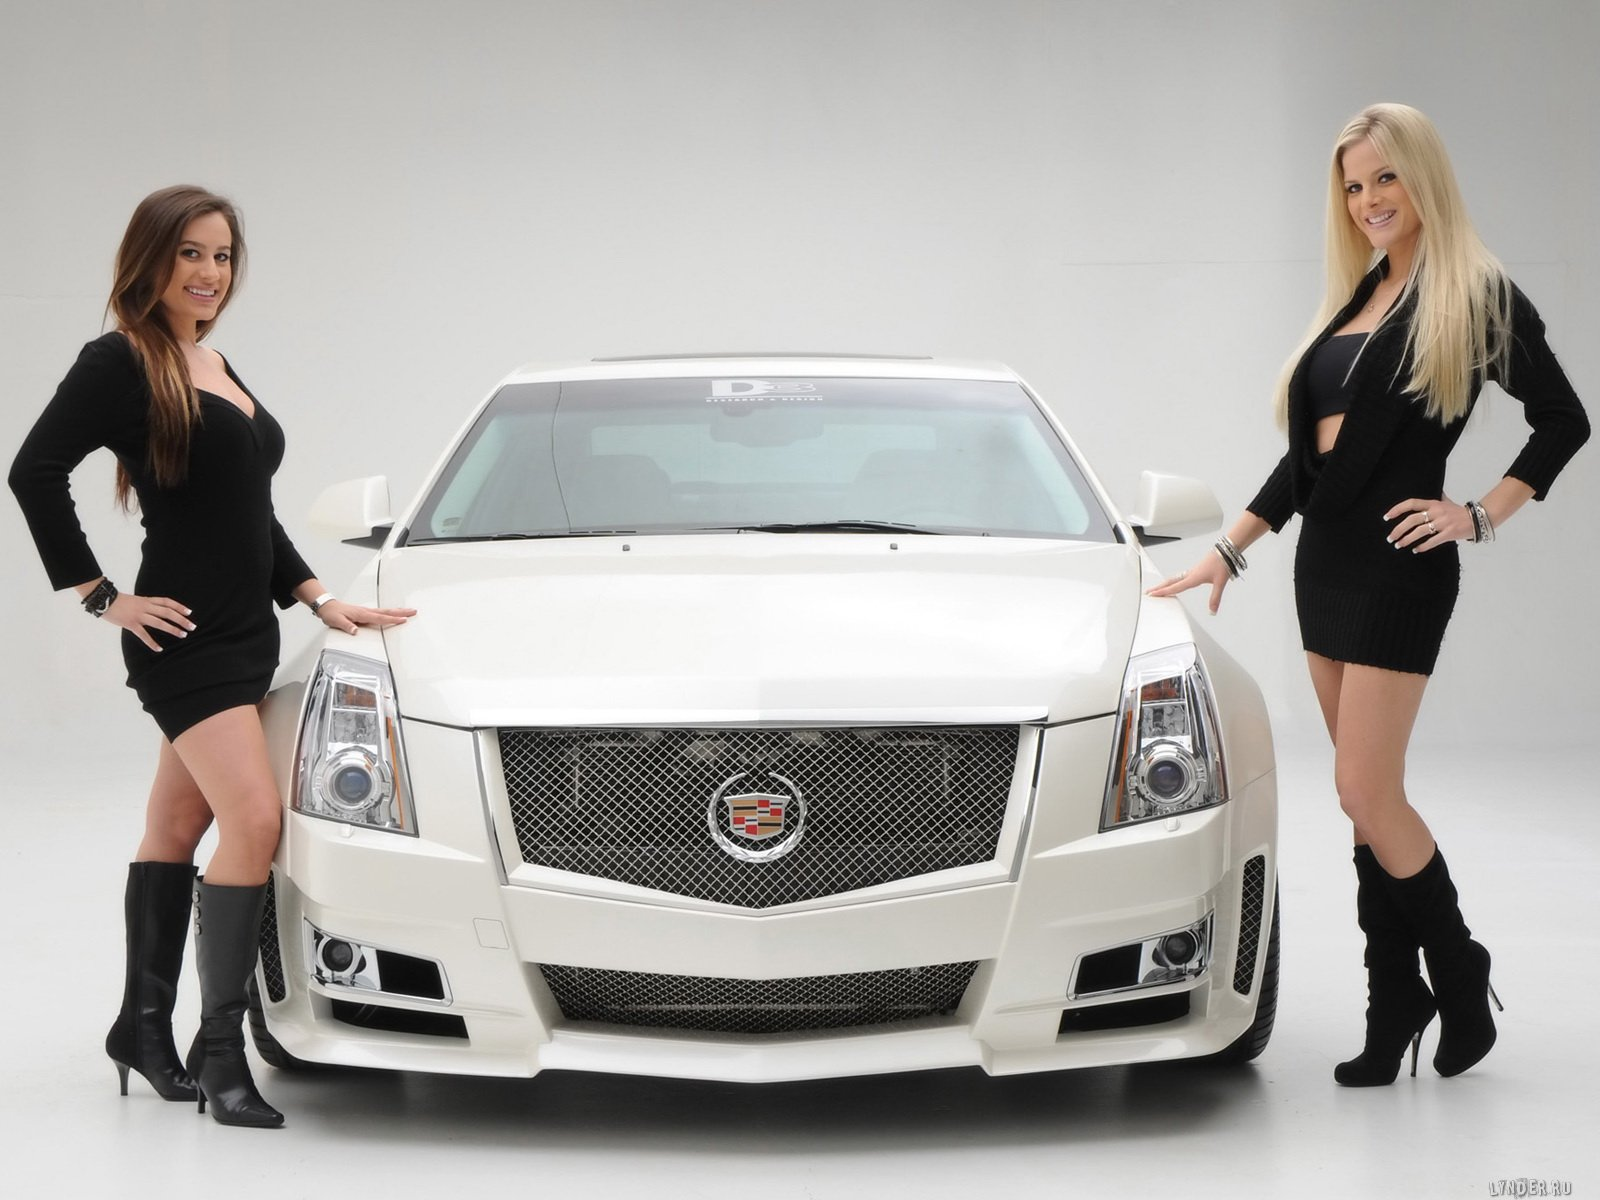 girls and cars Wallpapers For PC 1600x1200